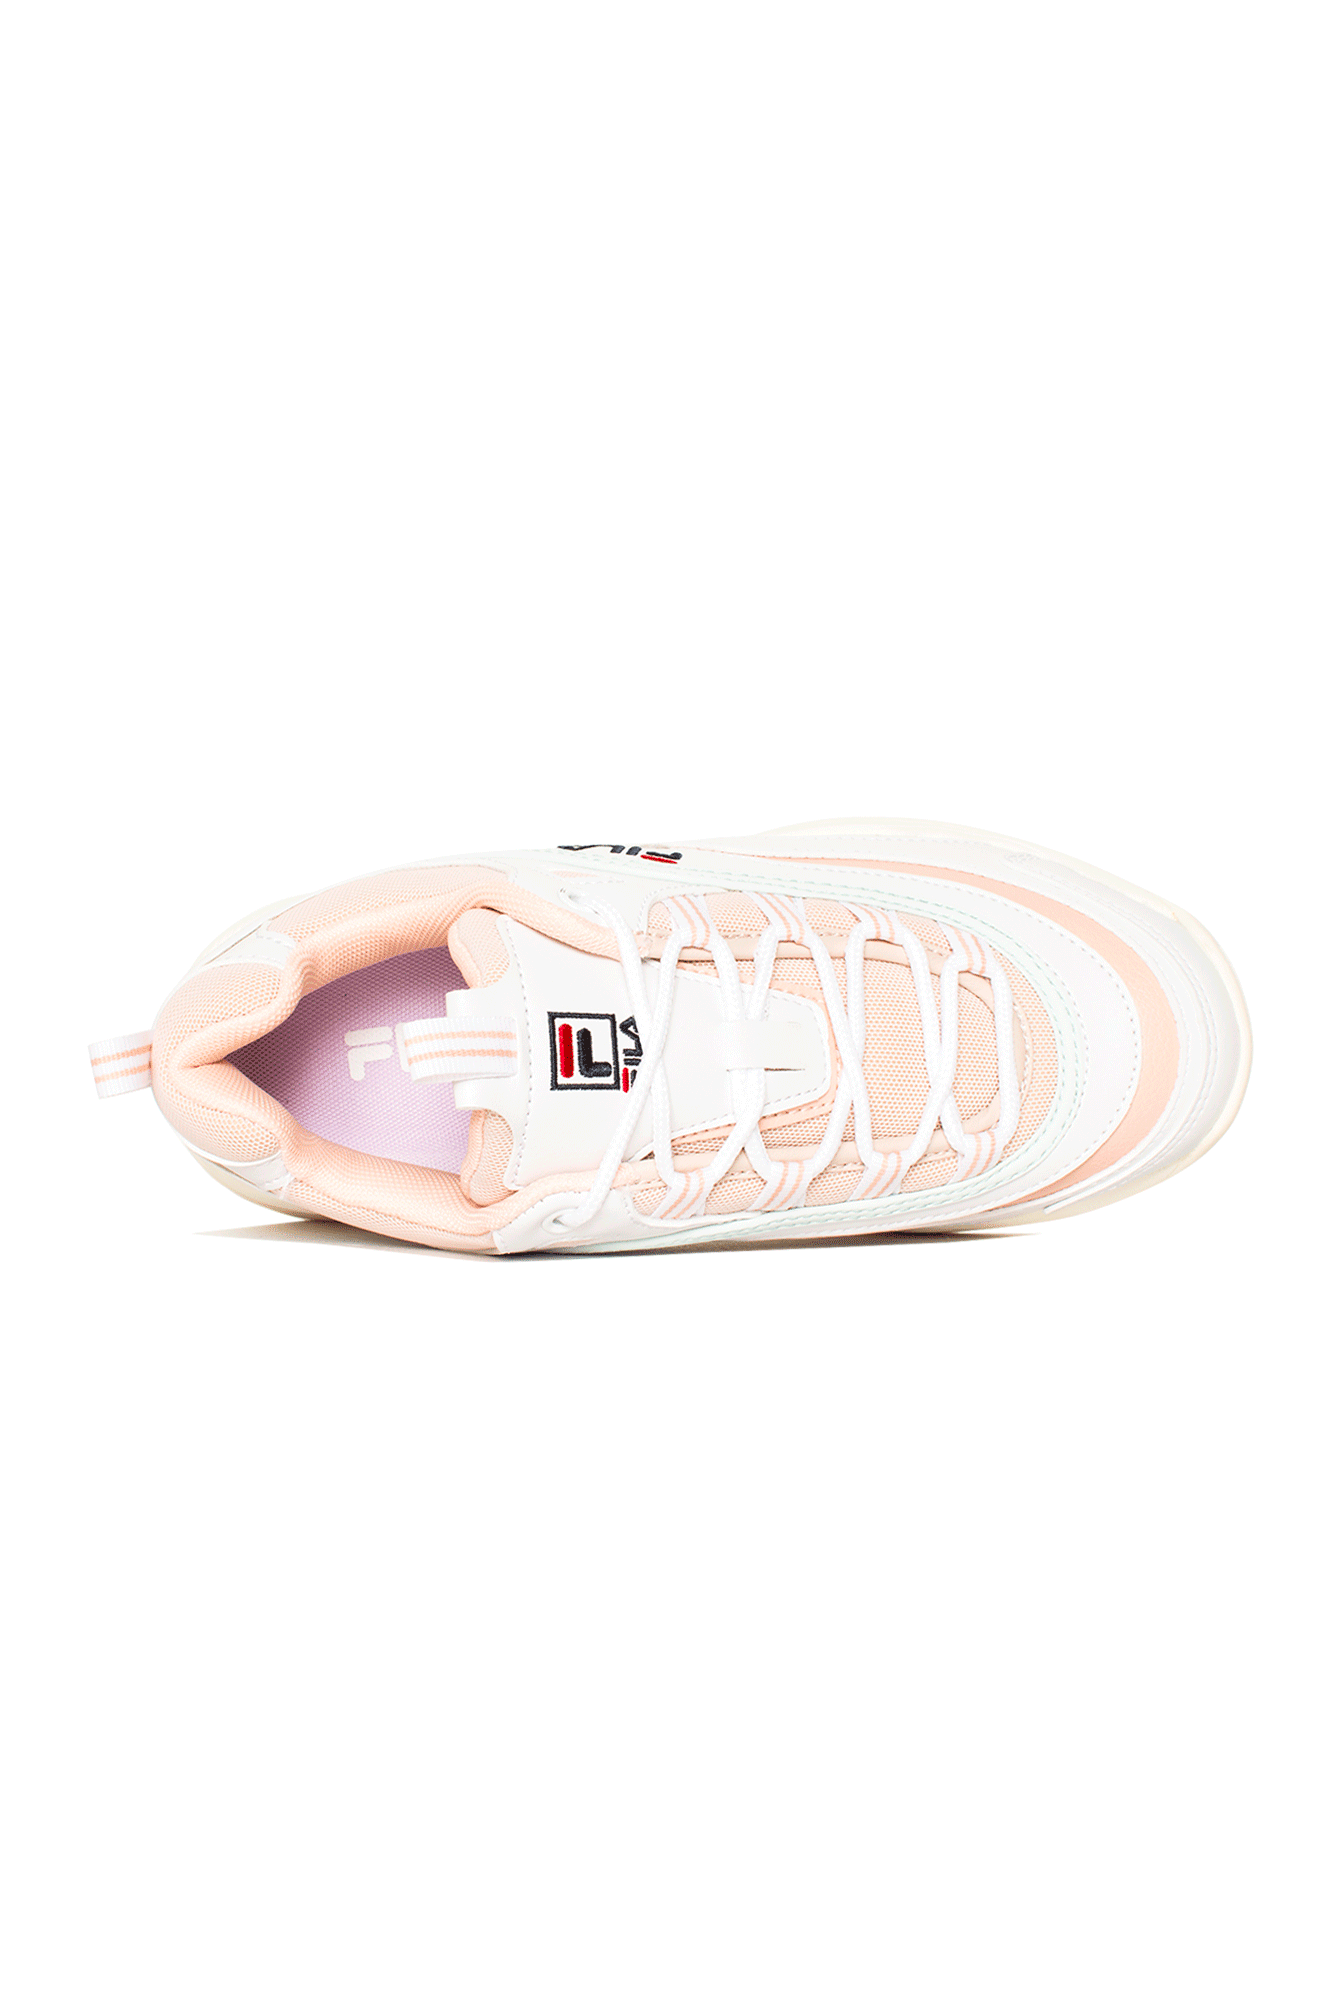 Fila Sneakers Ray Low Woman White 1010562#000#02Y#6 - One Block Down